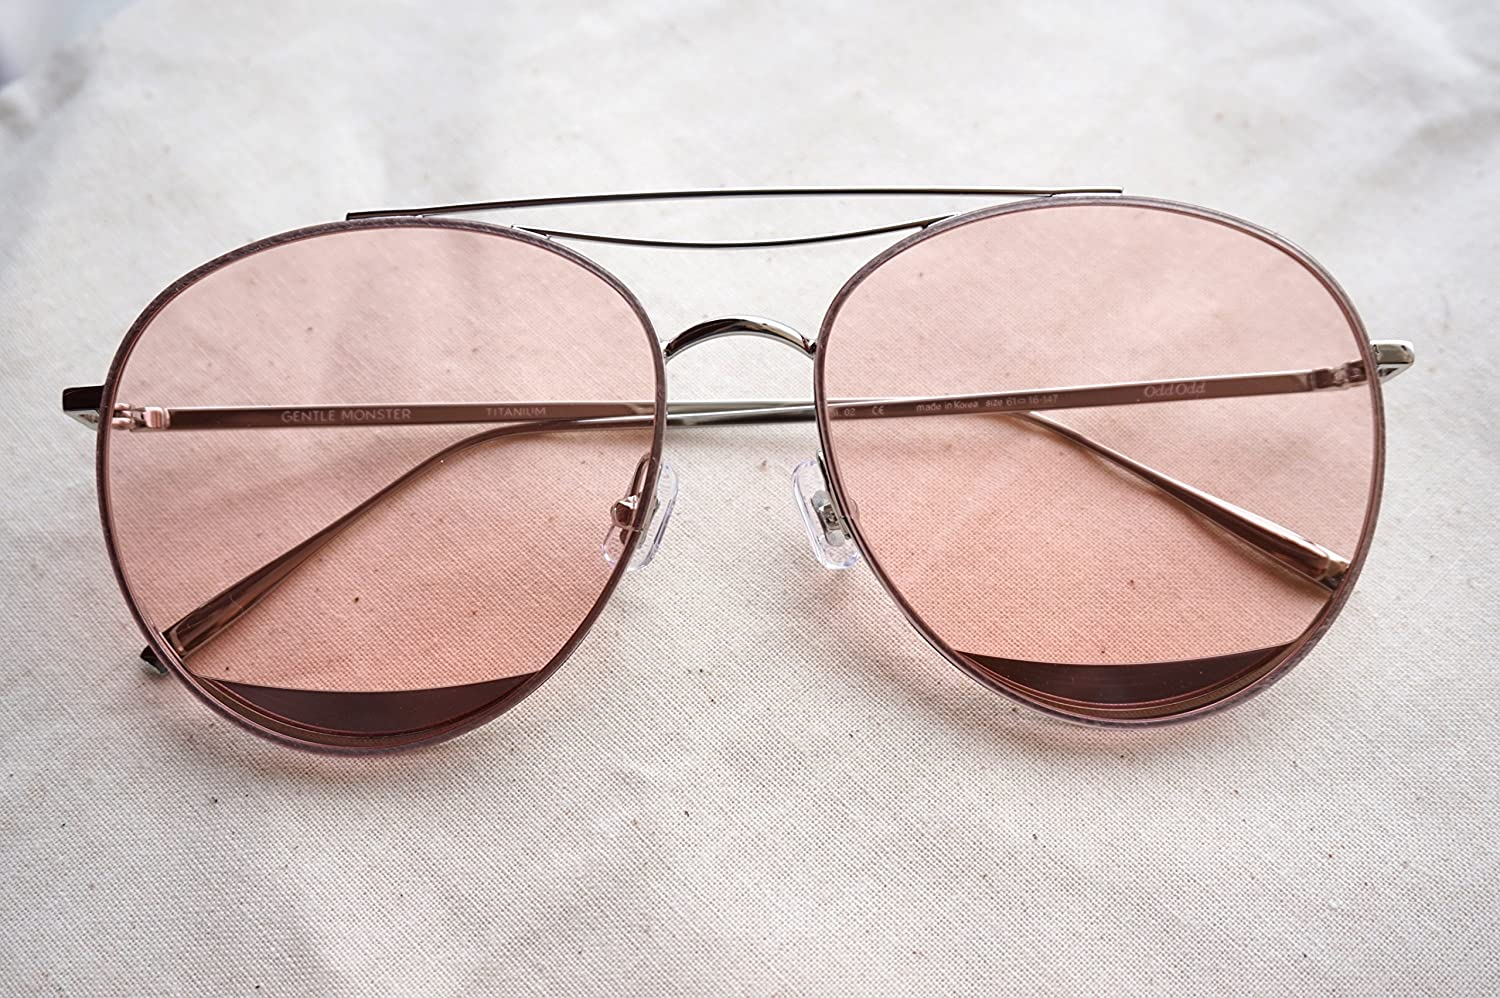 408324b3280 Amazon.com  Gentle Monster Sunglasses Odd Odd Silver Frame Pink Lenses With  Origianl Package Sets  Everything Else